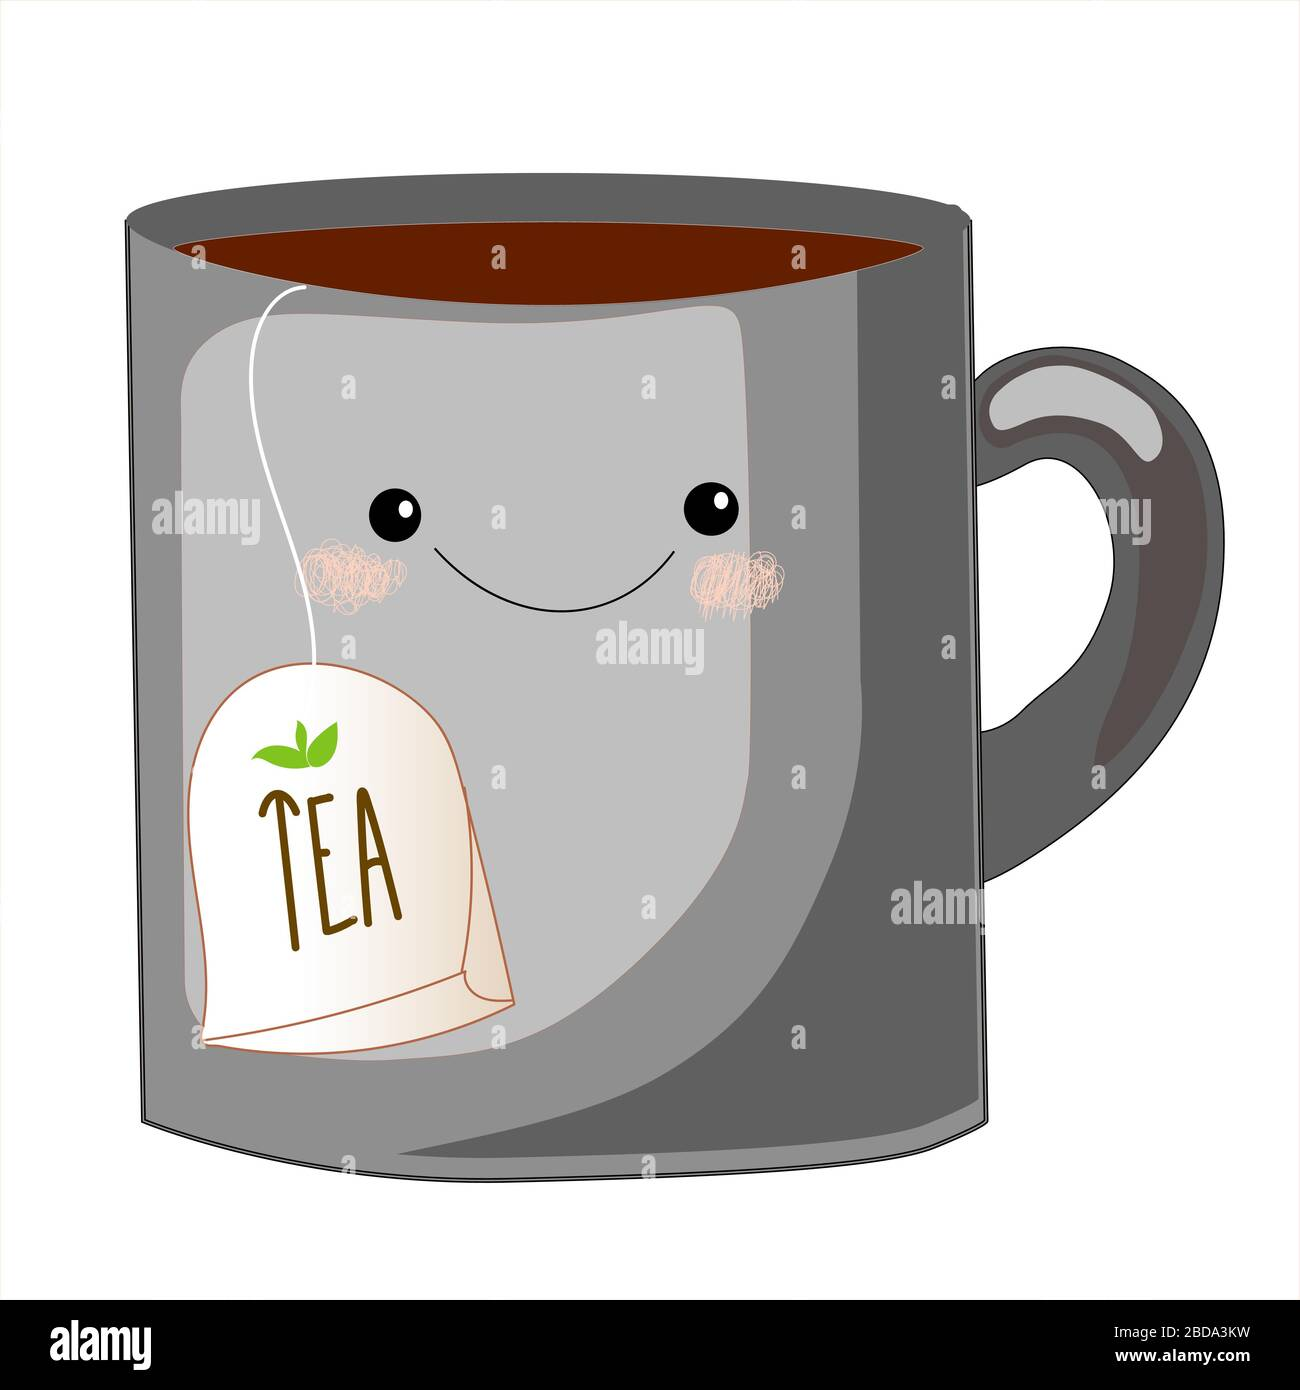 Cute Tea Cup Character Sweet Teabag With Cute Faces Emoji Doodle Objects Cute Tea Bag Set Cup Emoji Set With Cheeks And Eyes Colored Beautiful Stock Vector Image Art Alamy